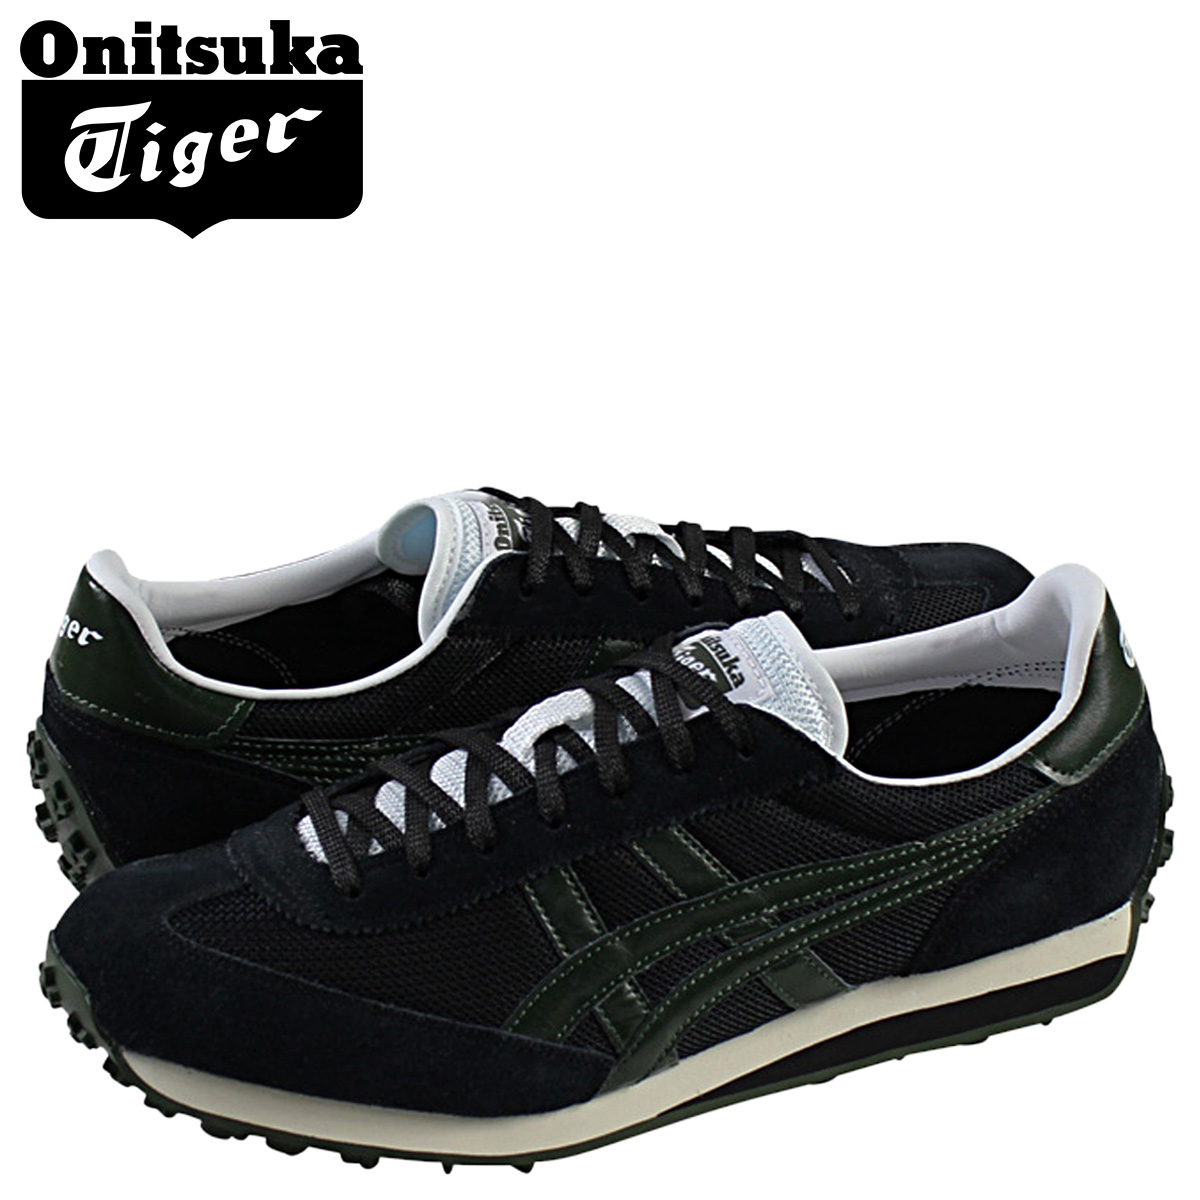 sale retailer f1118 2c9e7 Onitsuka tiger ASICS Onitsuka Tiger asics EDR 78 sneakers Edy are  TH503N-9079 black black men gap Dis